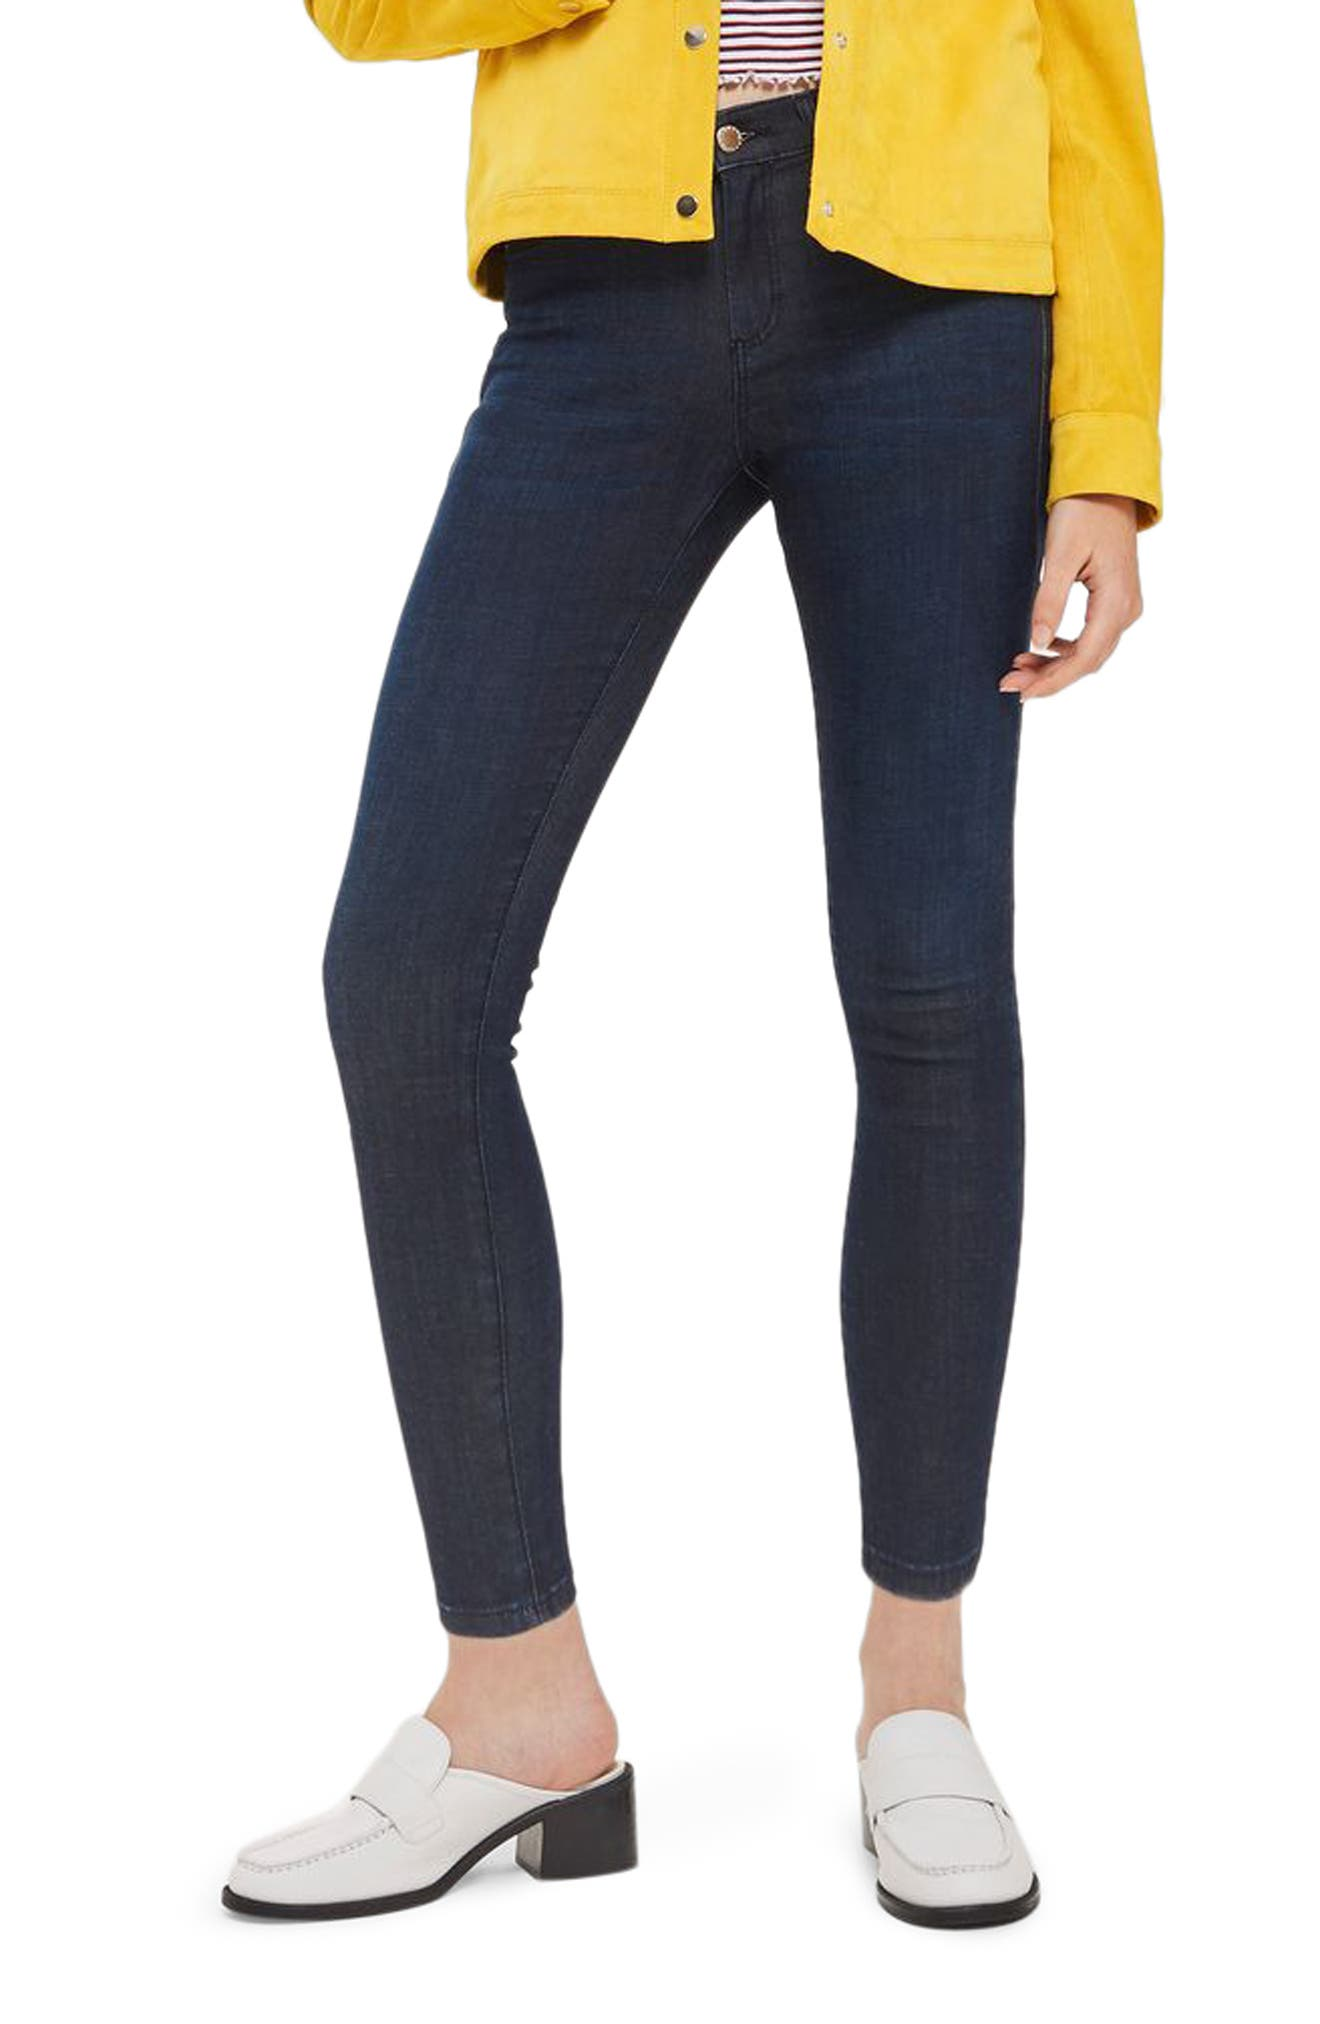 Alternate Image 1 Selected - Topshop Leigh Skinny Ankle Jeans (Petite)